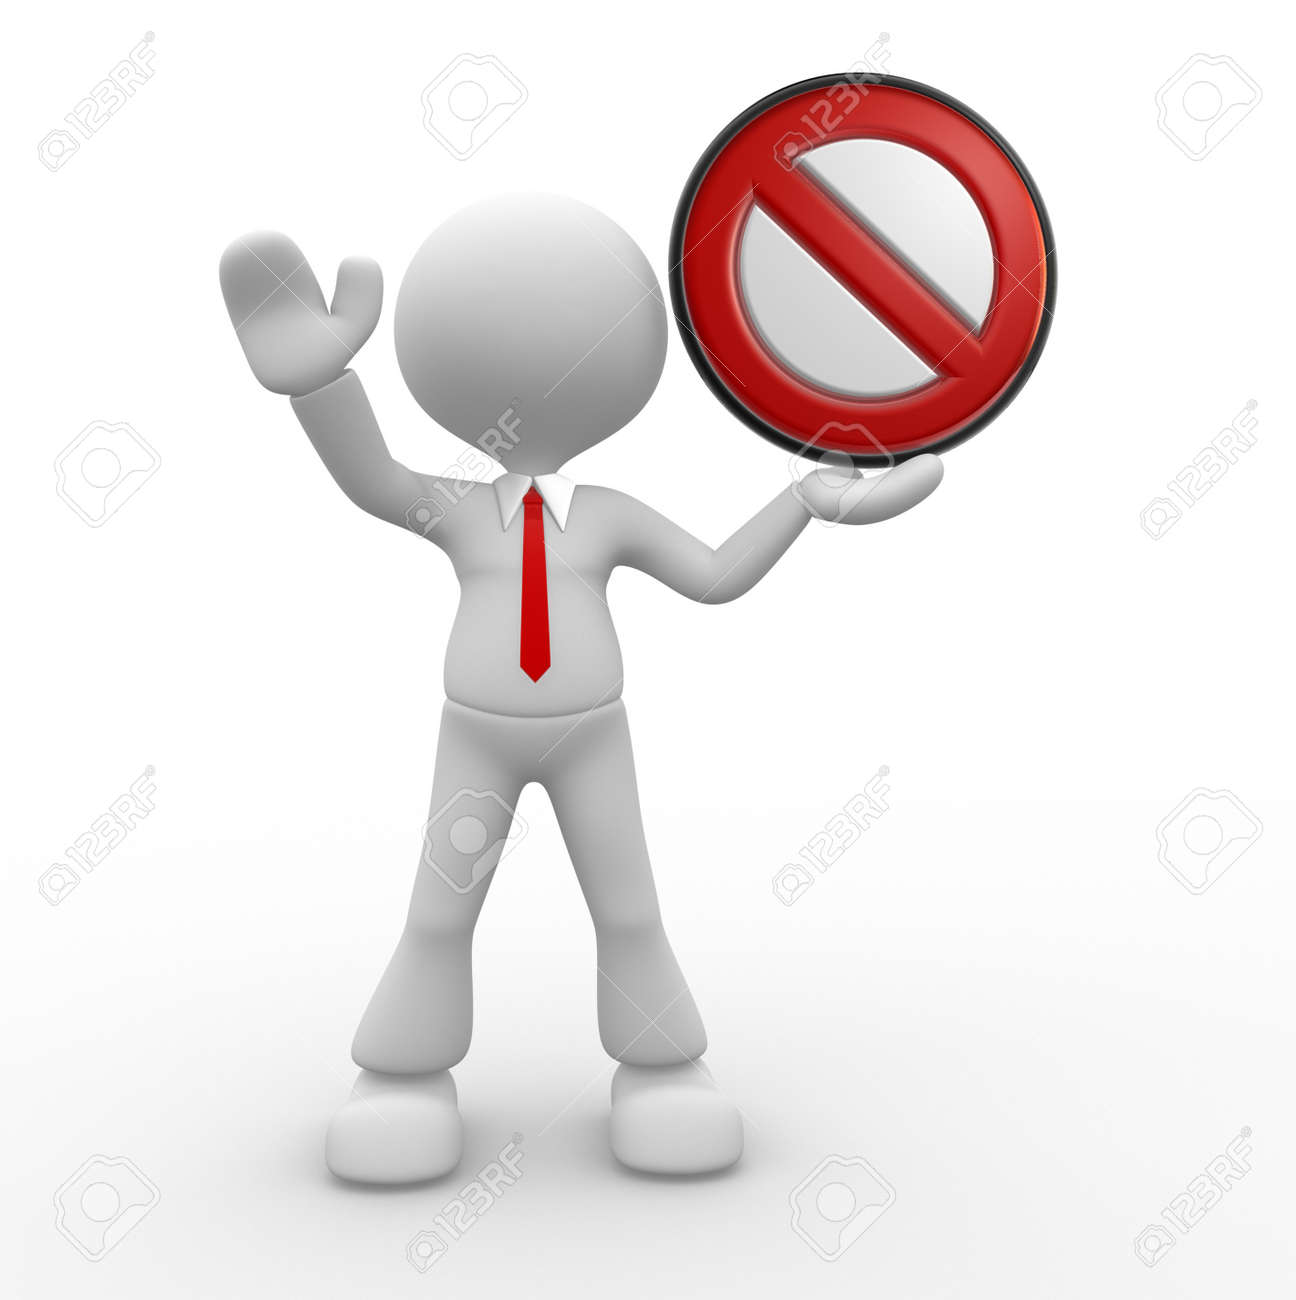 3d people - man, person with a stop sign. Stock Photo - 17905050